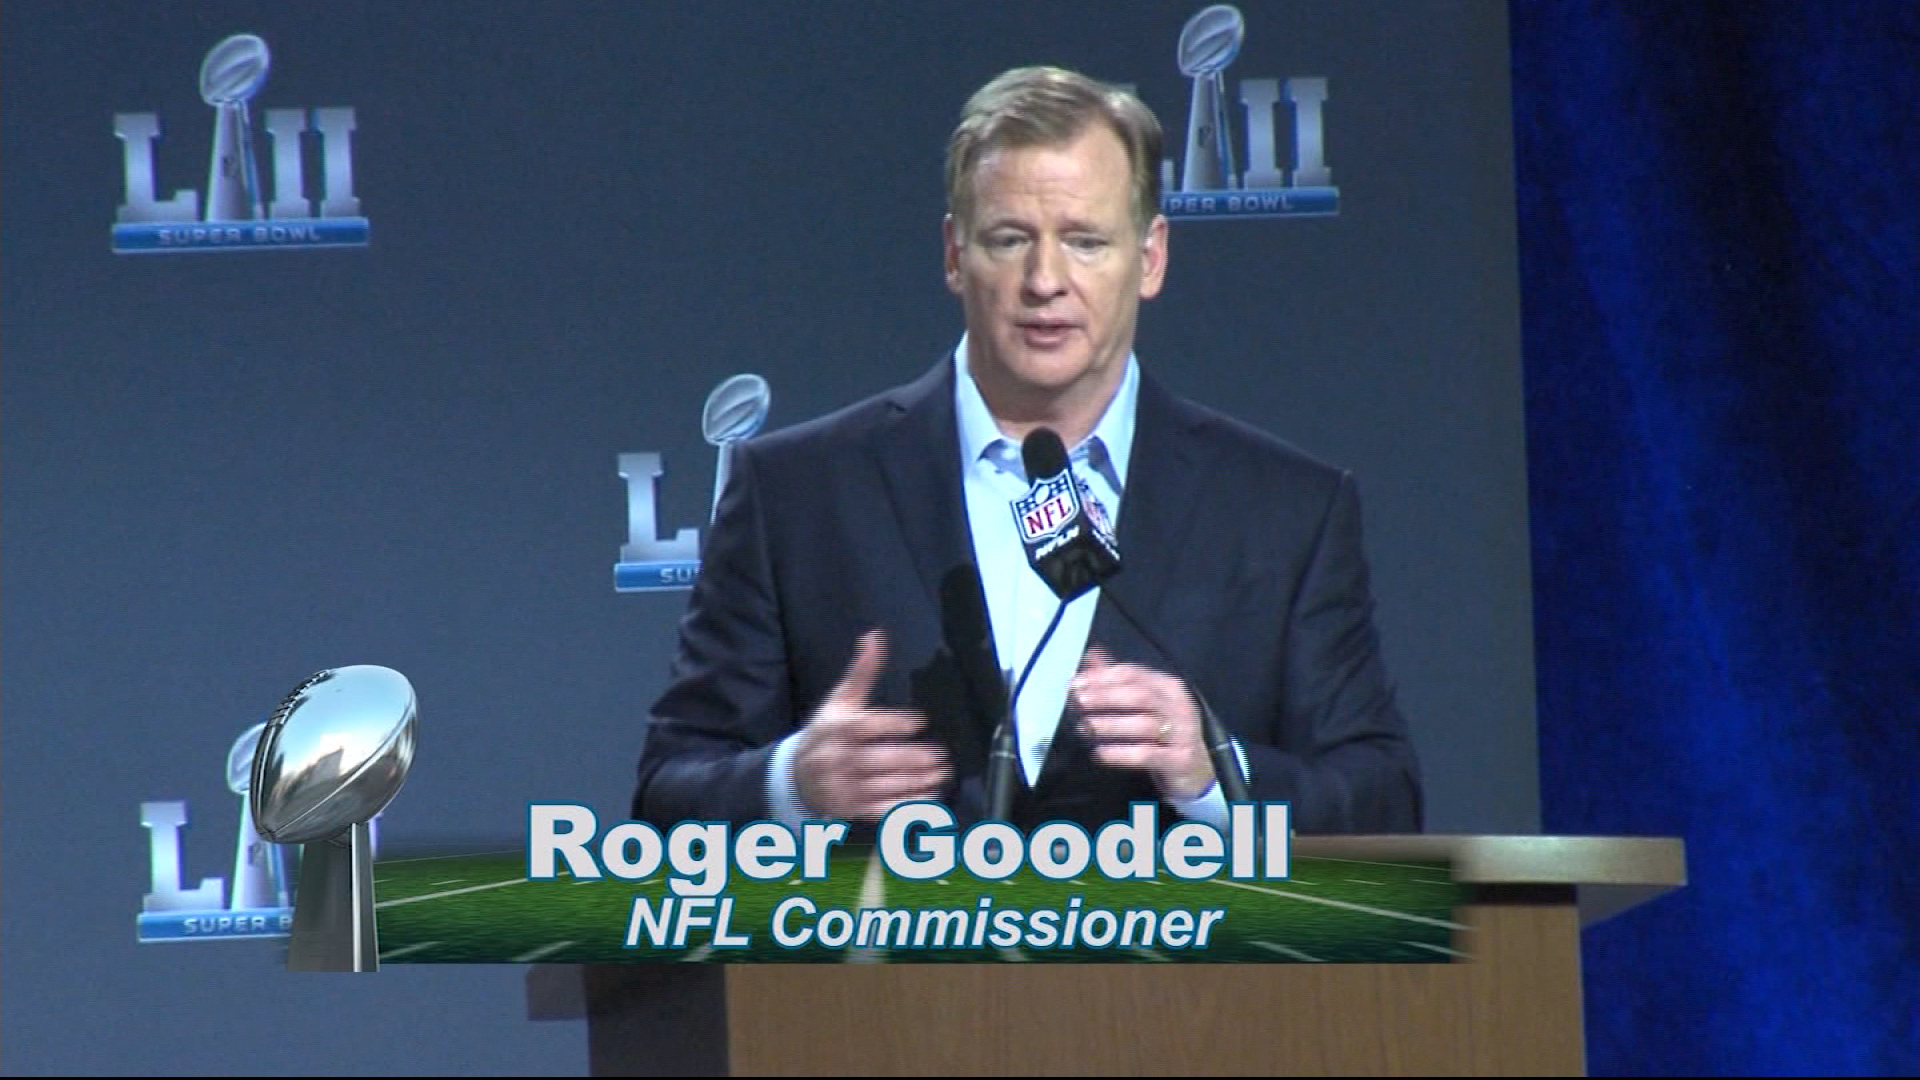 Super Bowl LII: Washington Redskins New QB and Goodell's State of the League